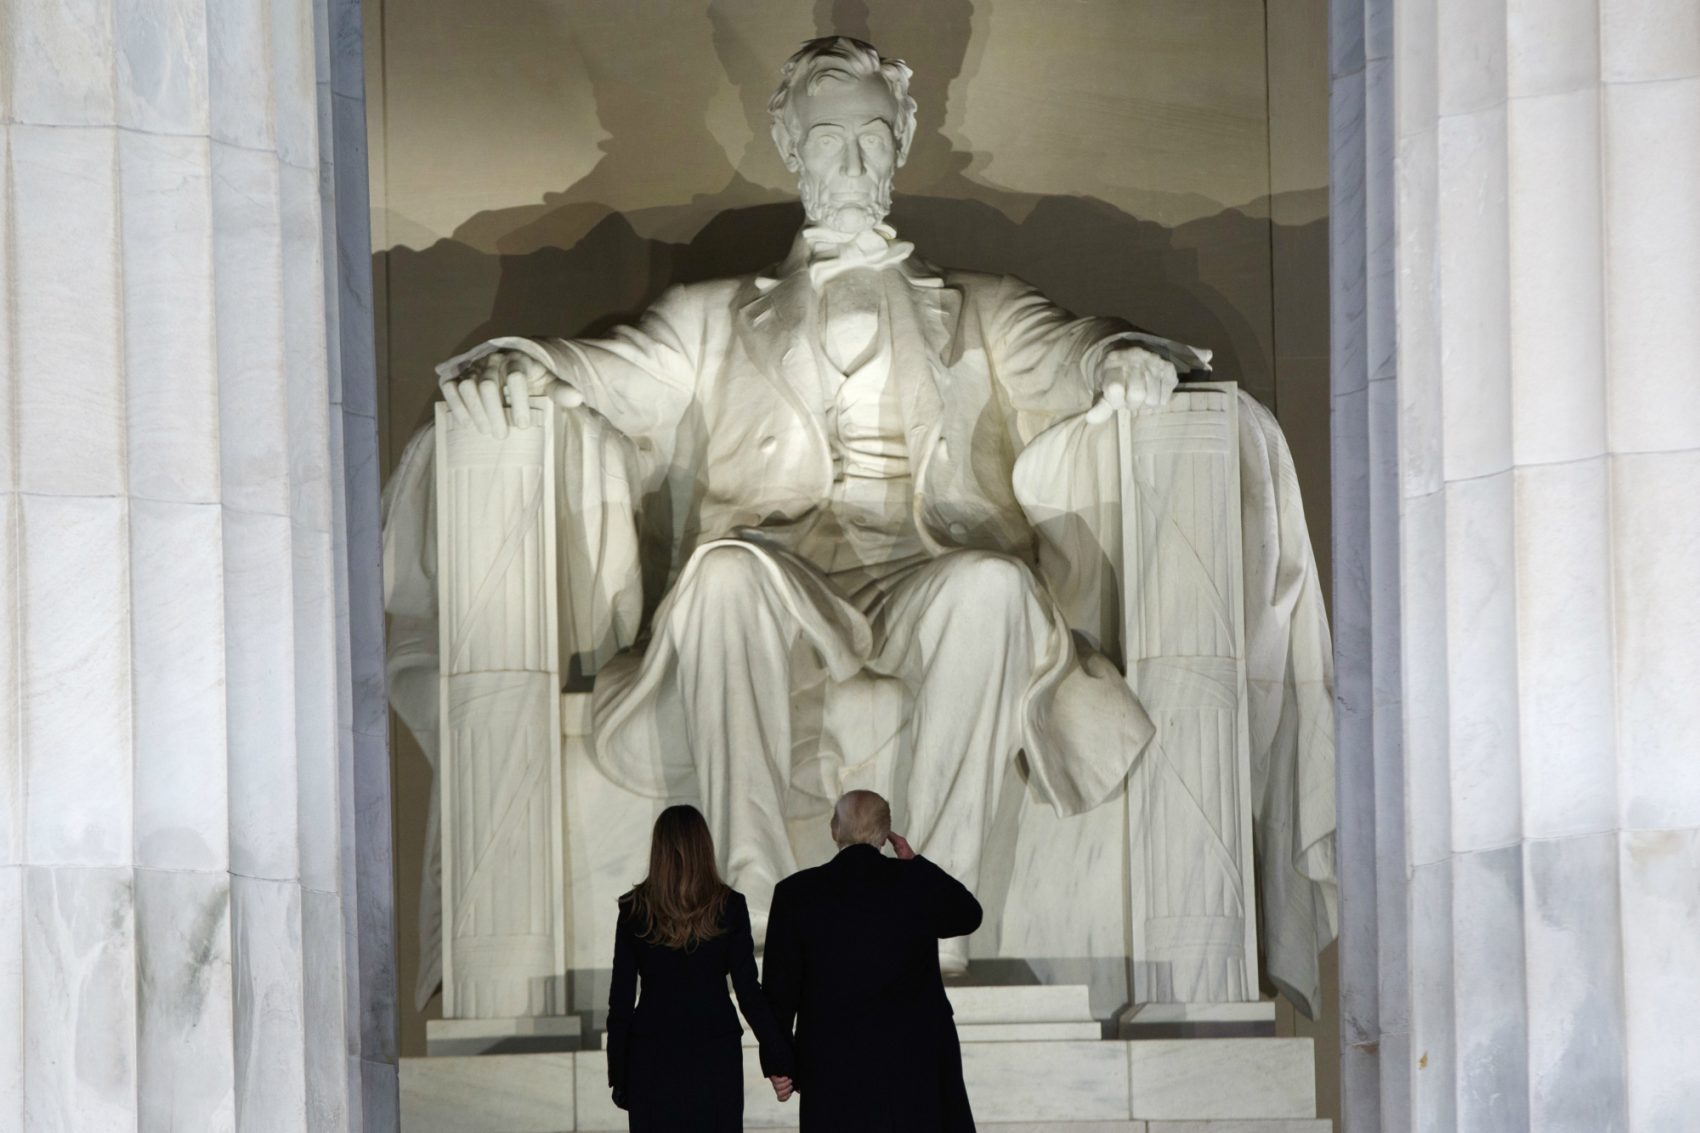 """Presidents' Day, writes Rich Barlow, is an apt time to reflect on Lincoln's lessons for the modern GOP, led by a president who pays lip service to his blue-collar base while pushing ideas that would hurt it. Pictured: President-elect Donald Trump, right, salutes as he arrives with his wife Melania Trump to the """"Make America Great Again Welcome Concert"""" at the Lincoln Memorial, Thursday, Jan. 19, 2017, in Washington. (Evan Vucci/AP)"""